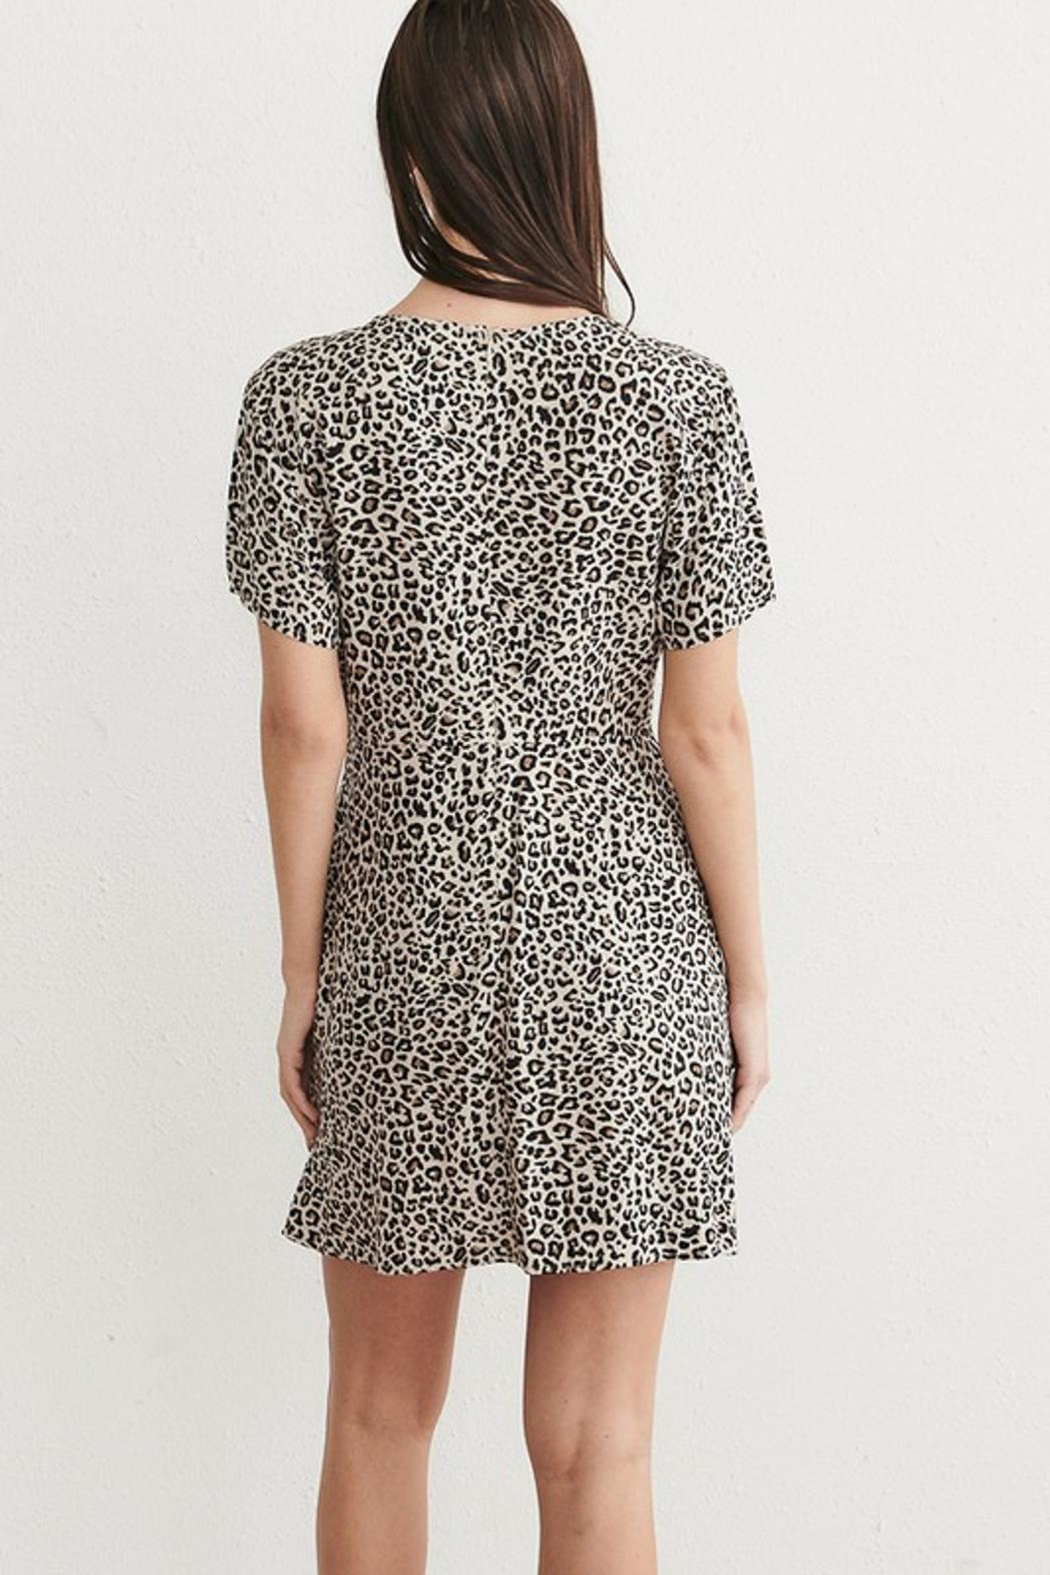 WEEK& Clothing Los Angwle Leopard Skater Dress - Front Full Image